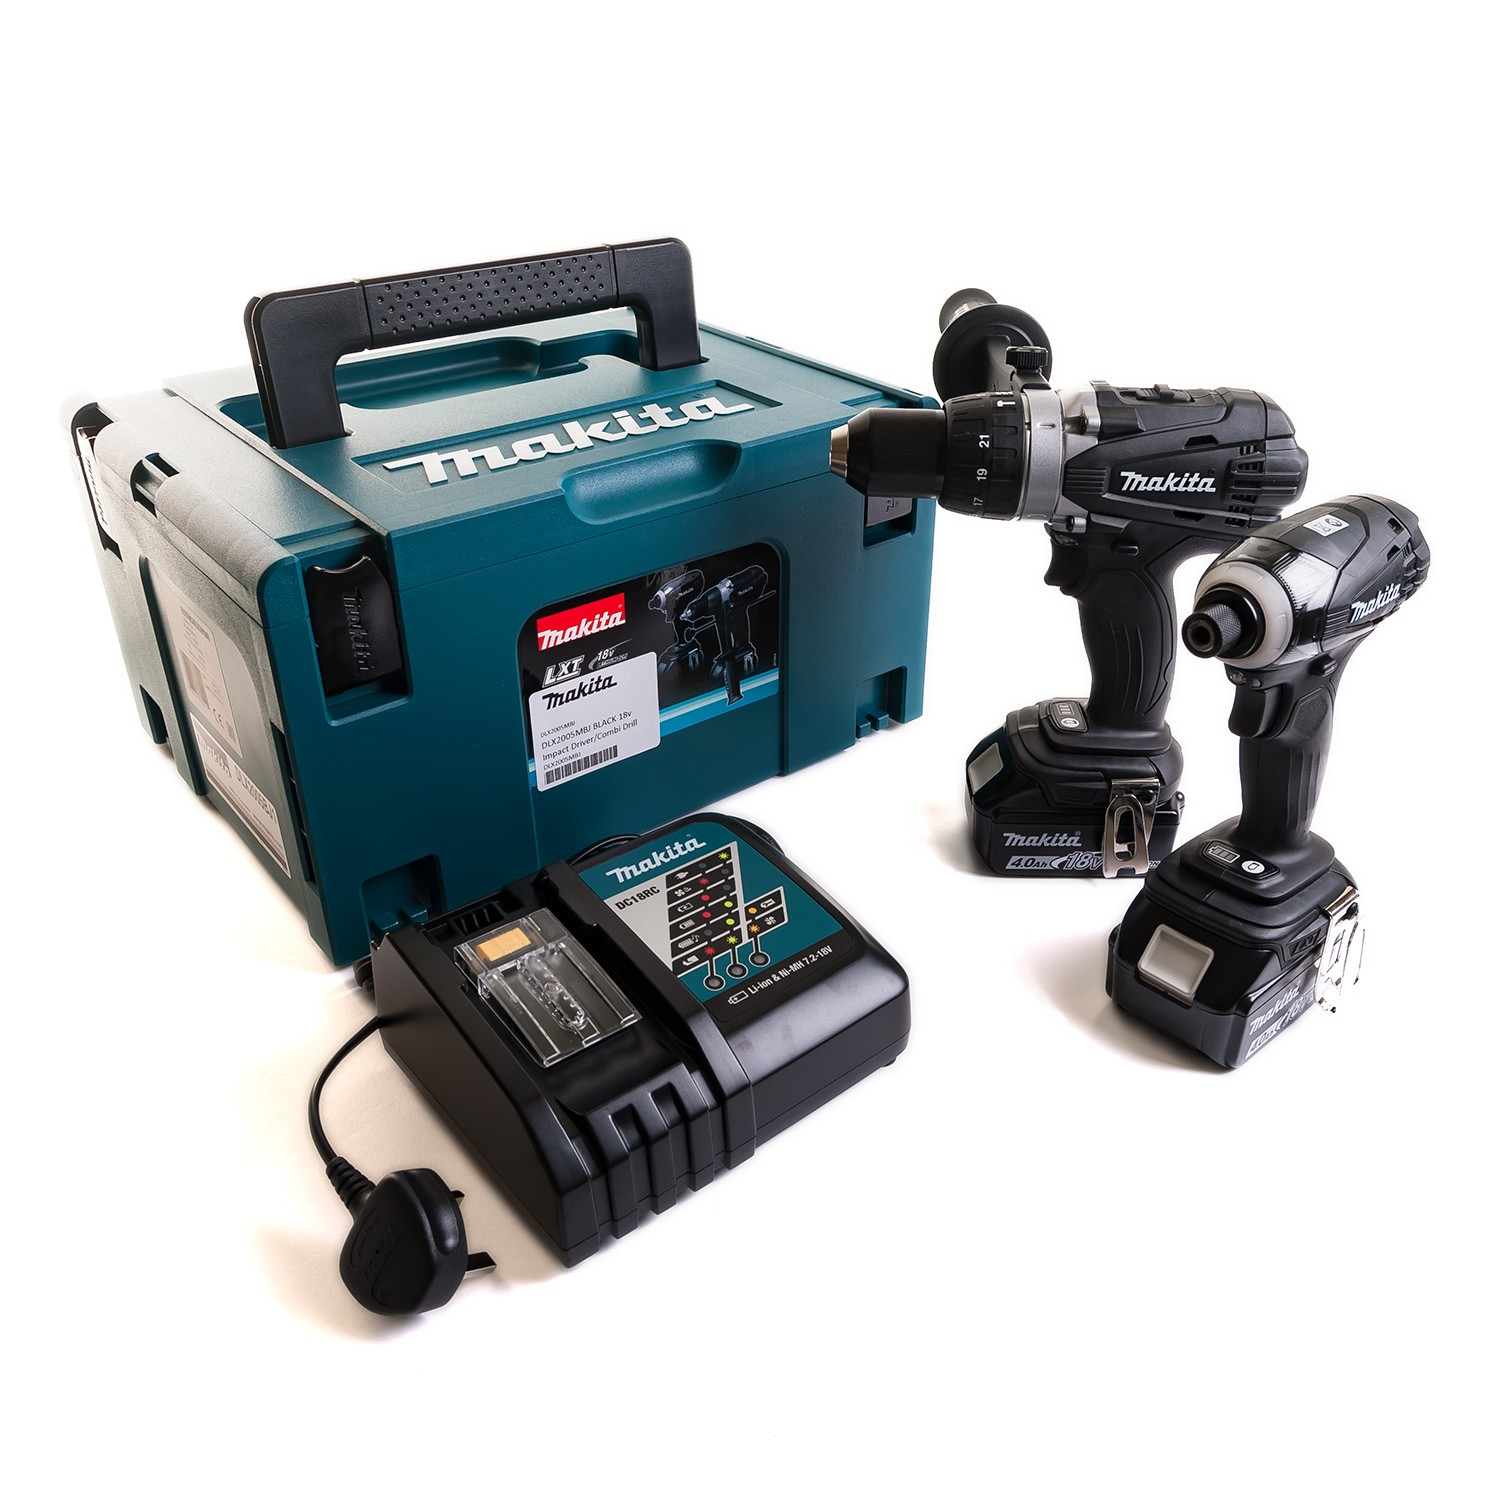 Makita DLX2005MBJ BLACK 18v Impact Driver/Combi Drill Twin Kit inc 2x 4Ah Batts